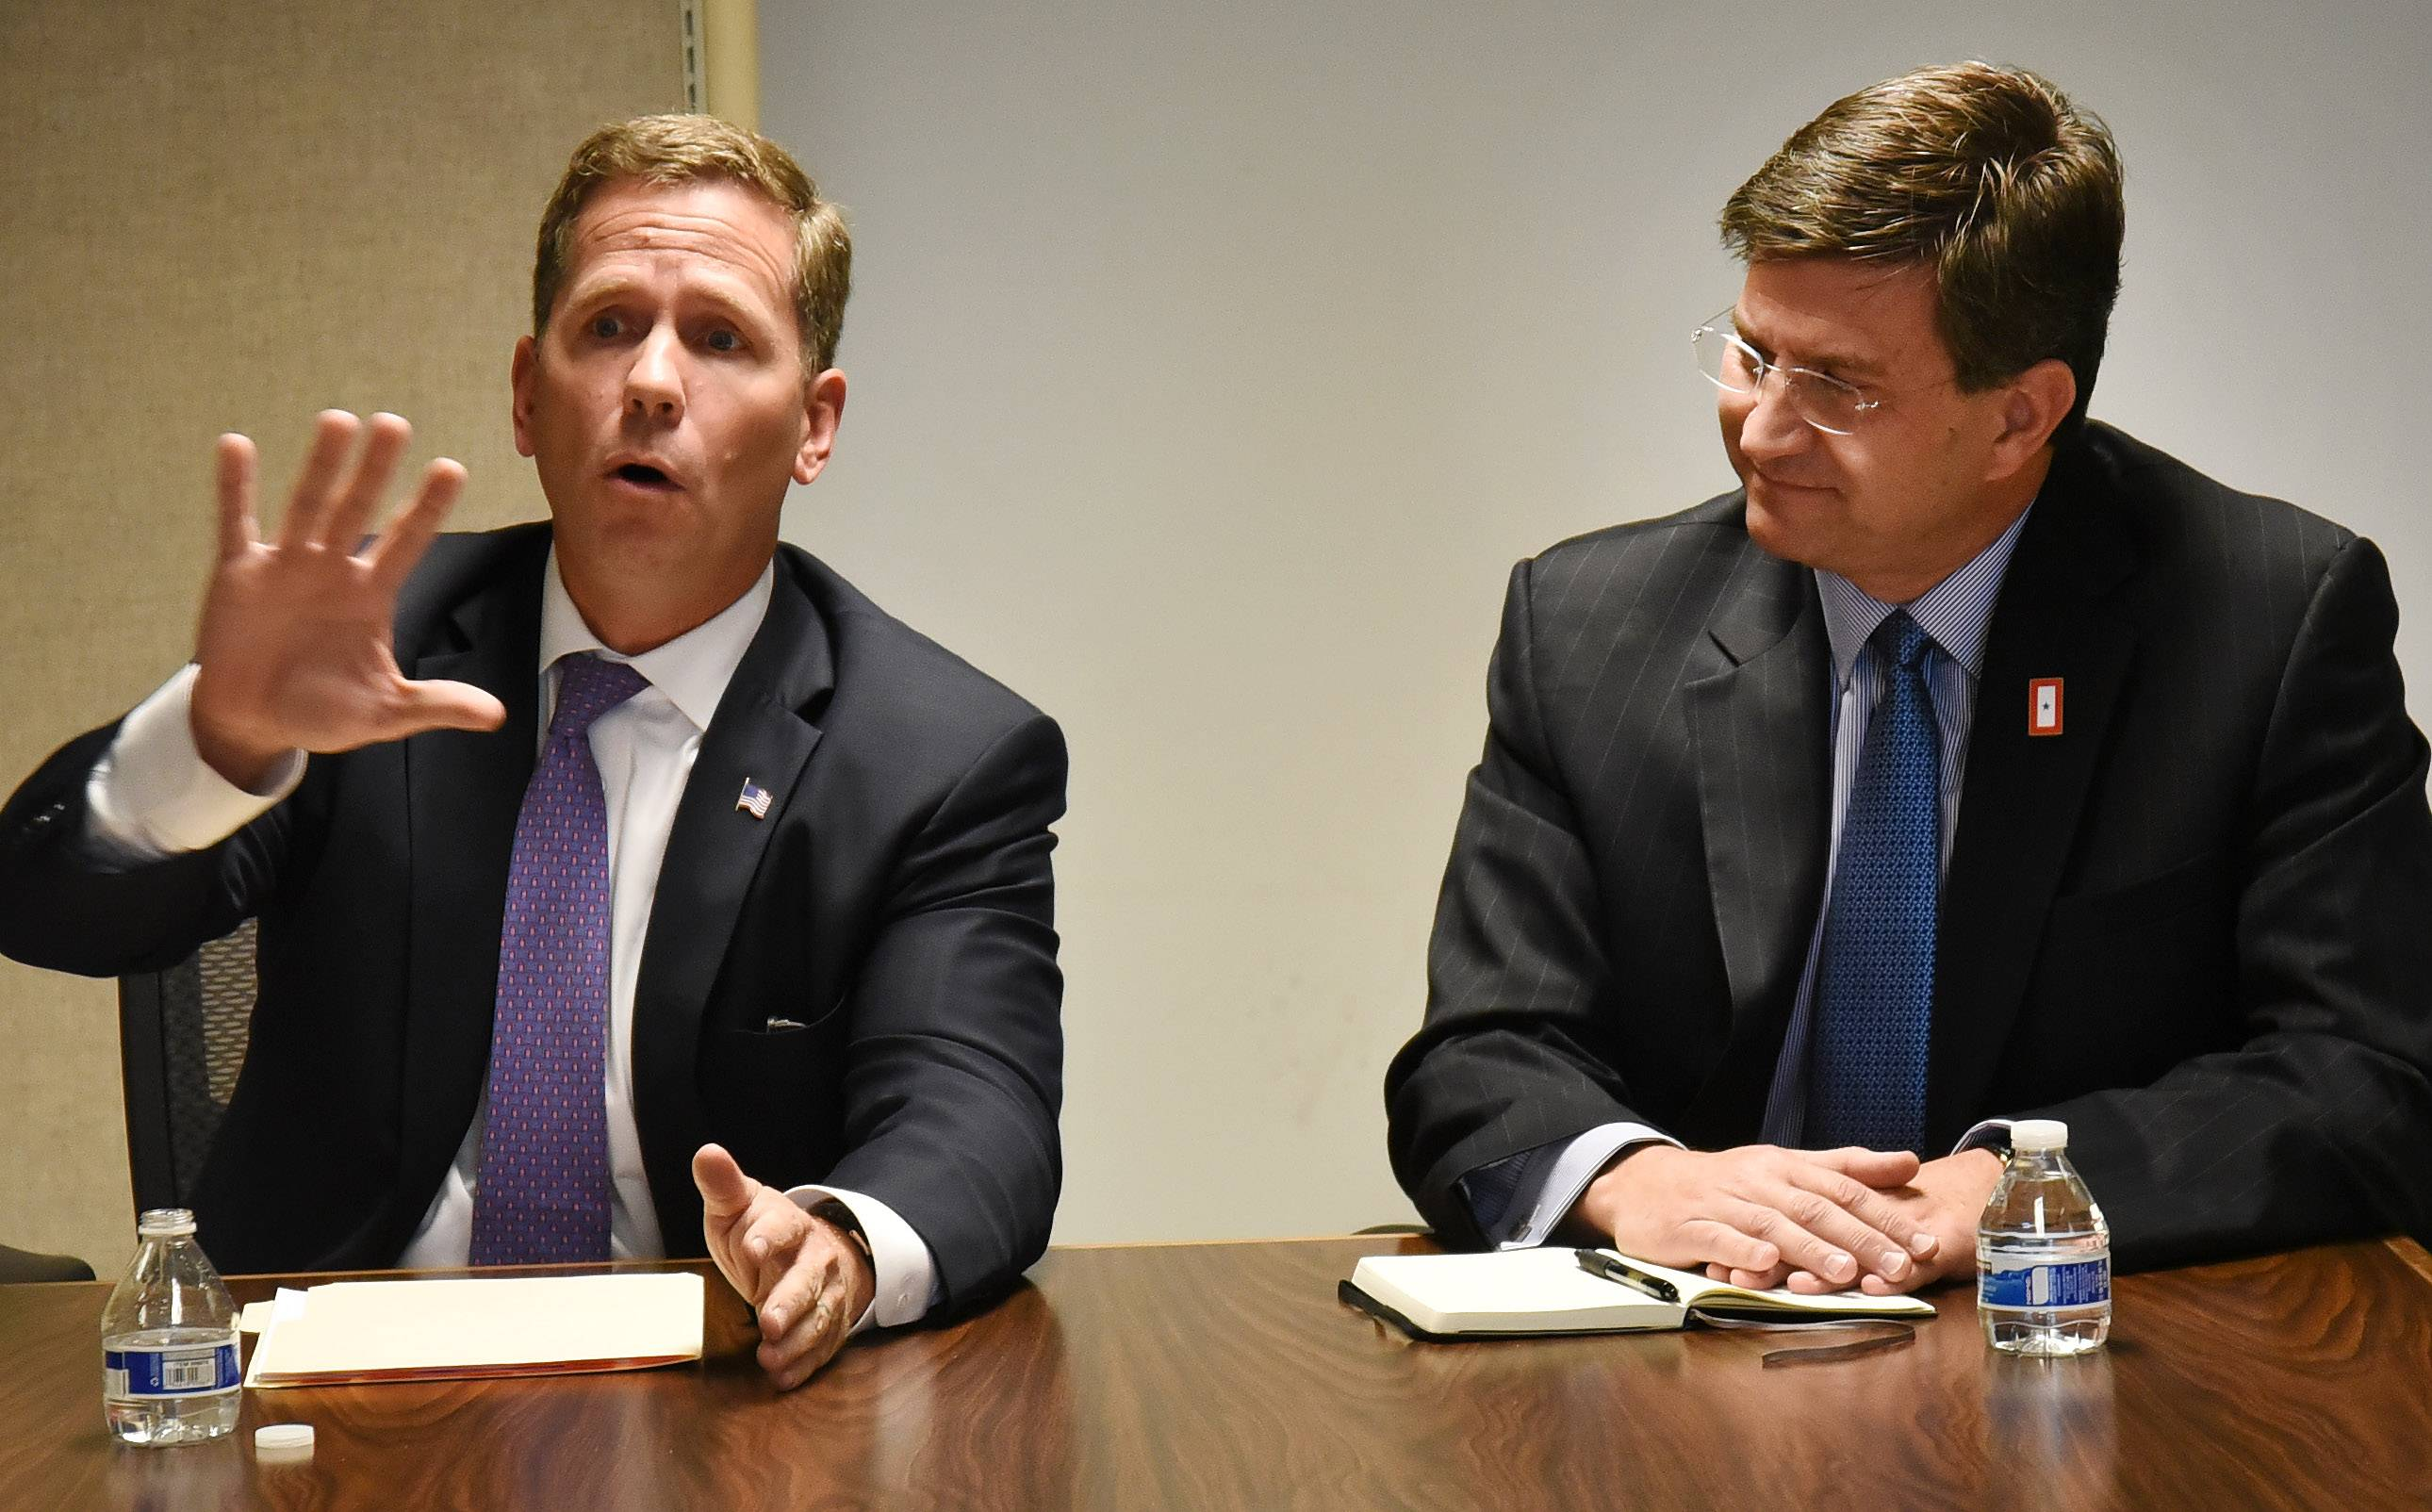 Dold says he'll back a write-in candidate for president instead of Trump